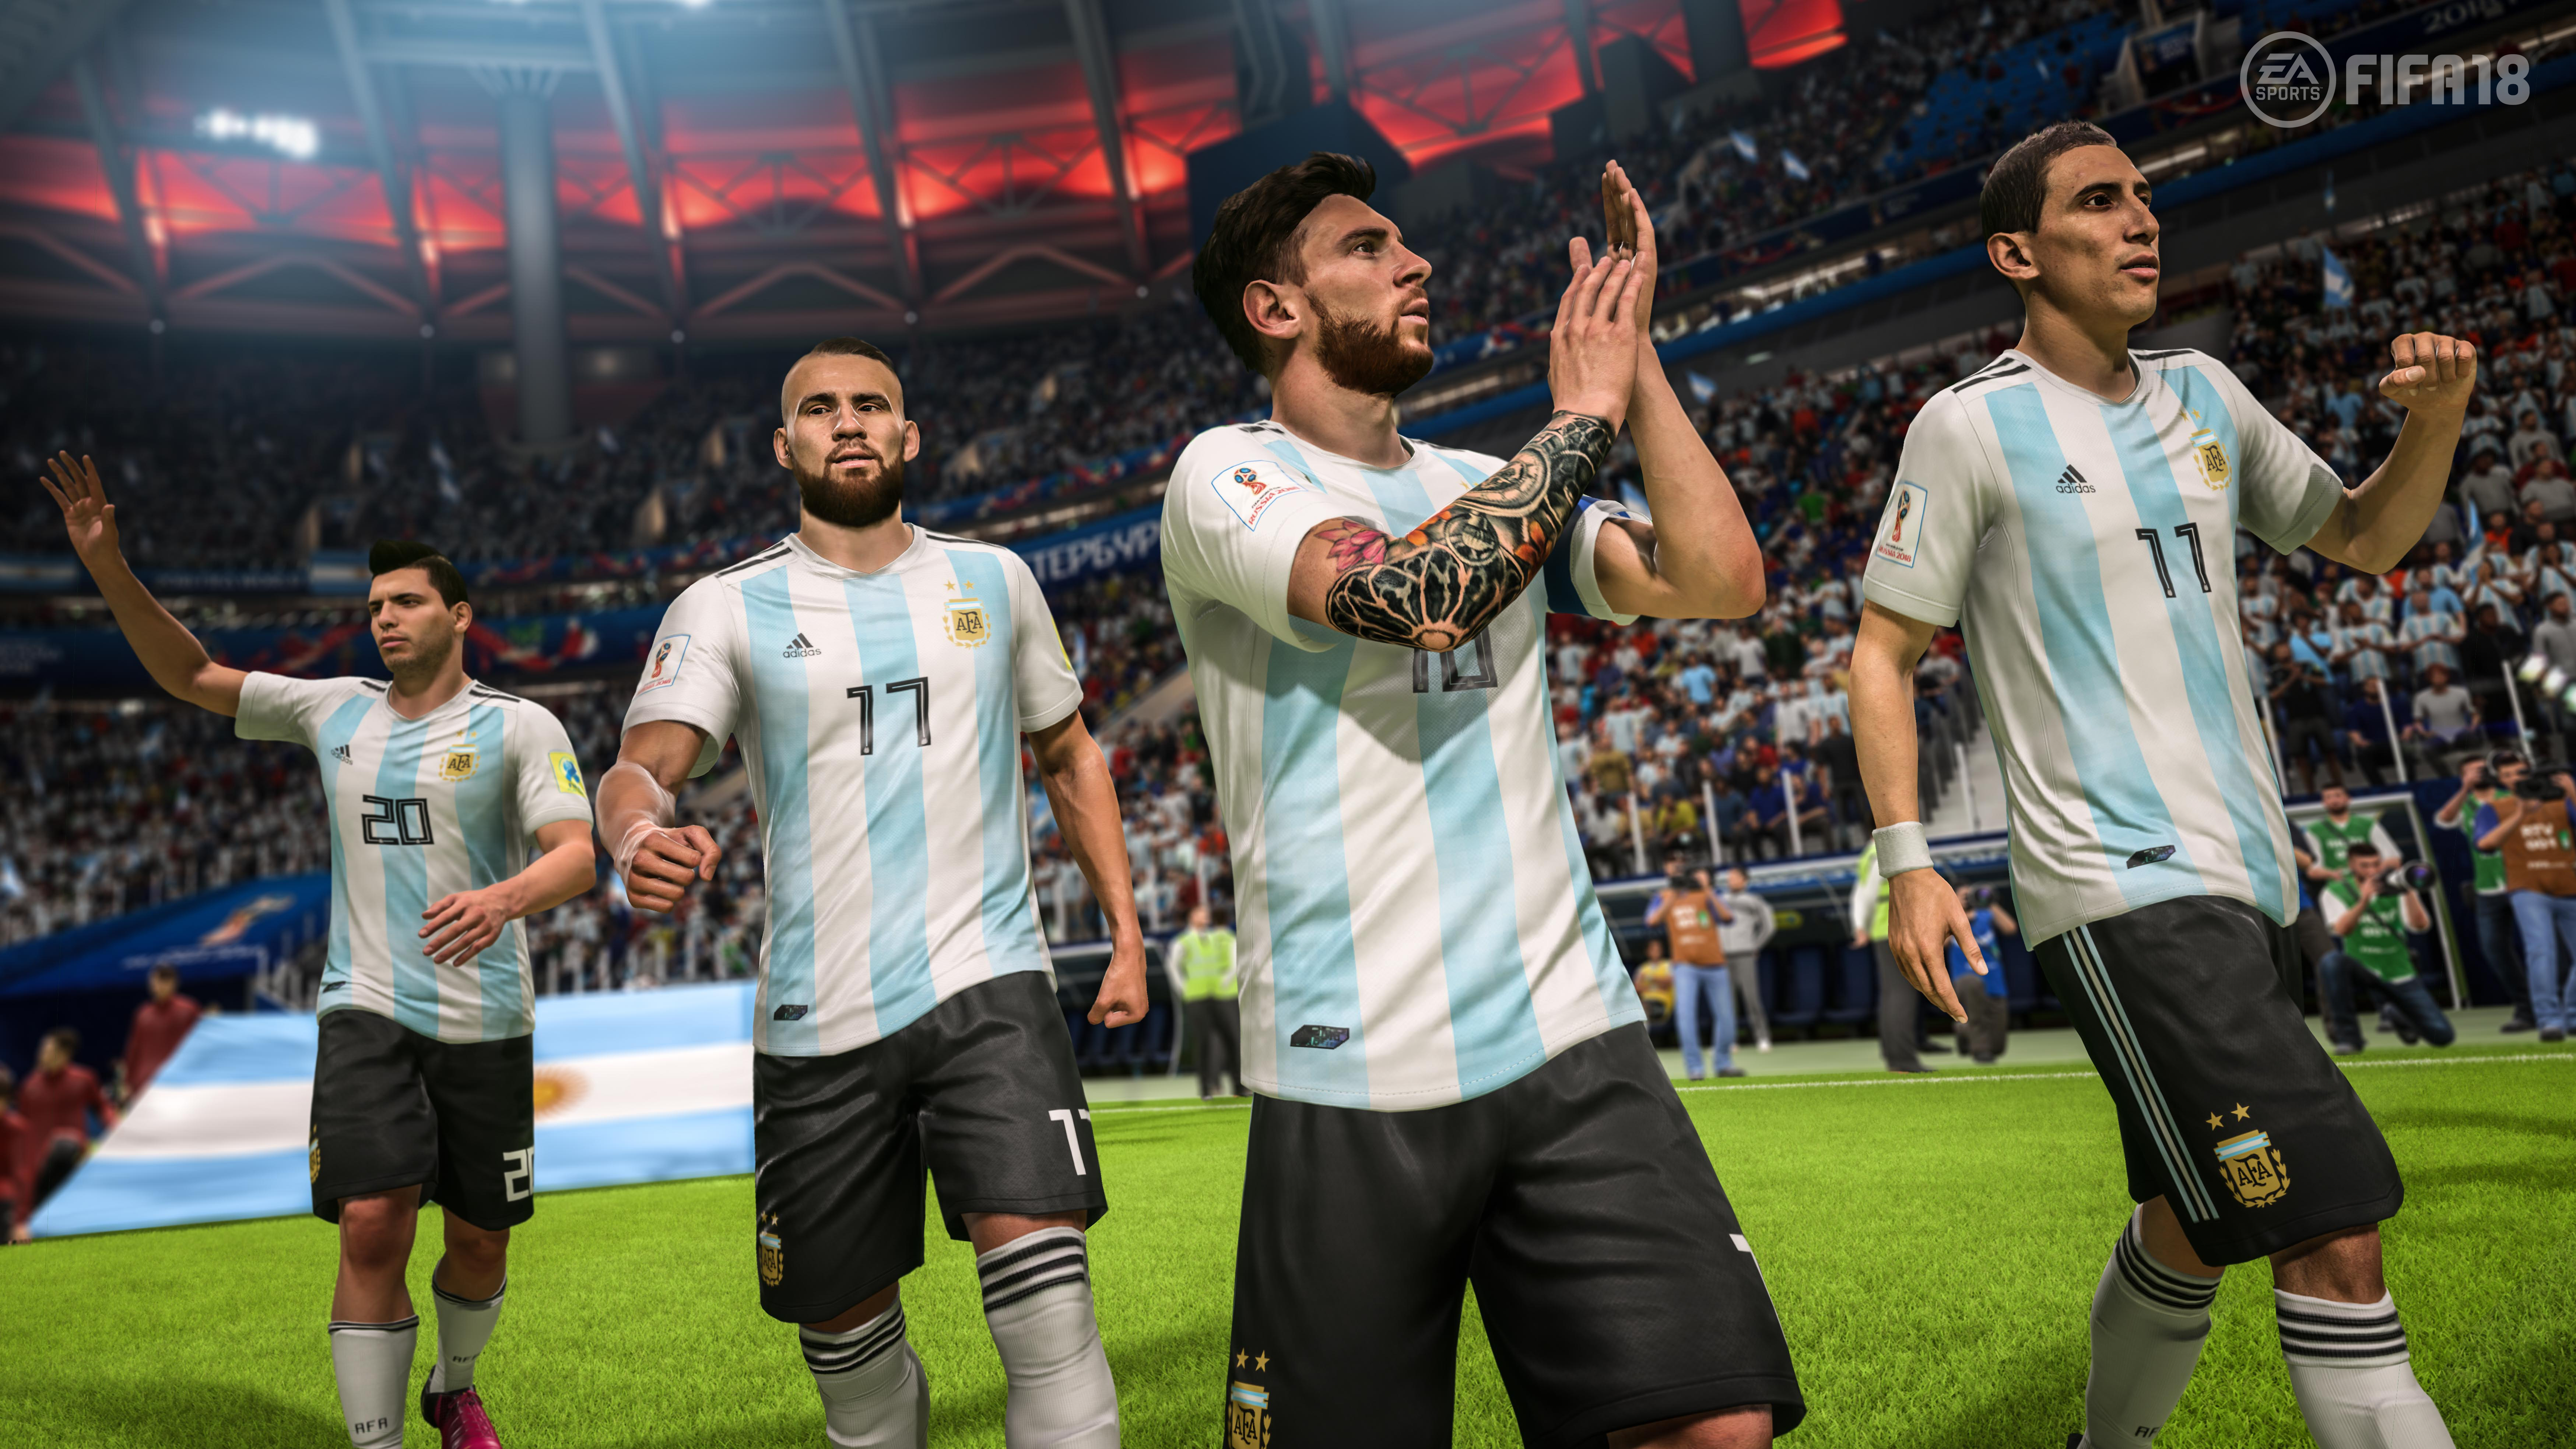 FIFA 18 World Cup Update 2